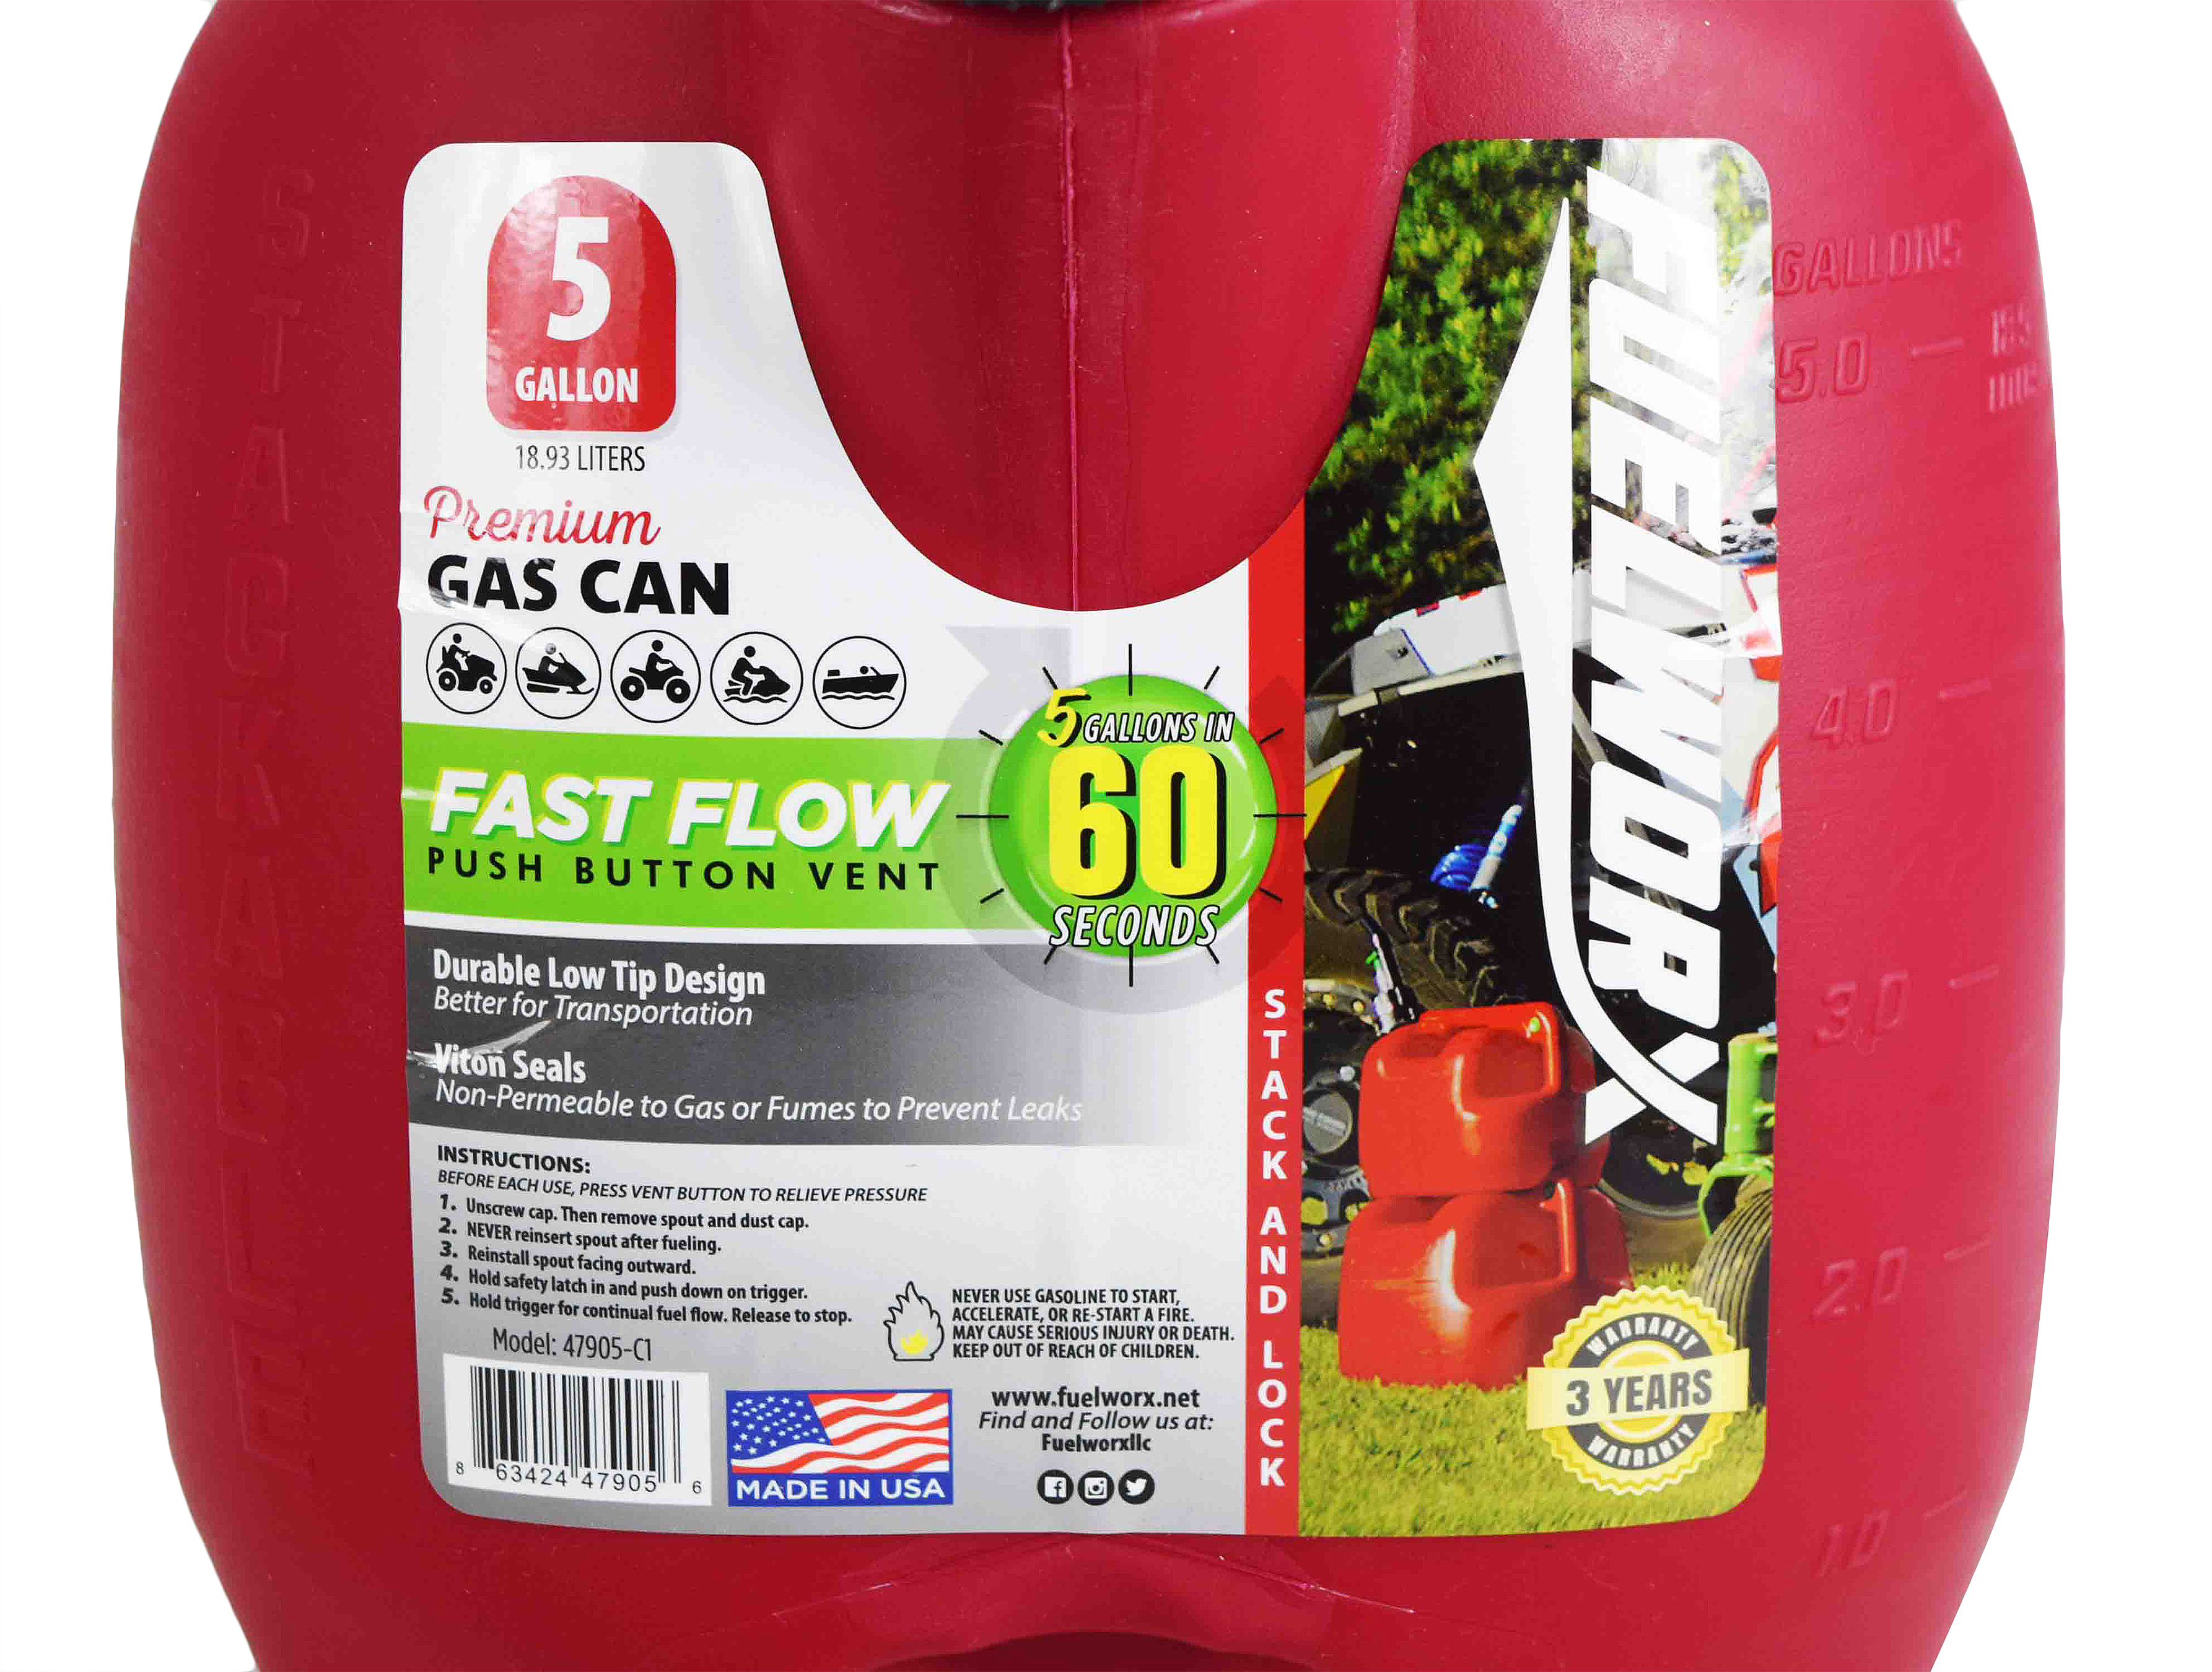 Fuelworx-Stackable-Easy-Pour-5-Gal-Vented-Fuel-Can-Made-in-USA-CARB-Compliant-image-8